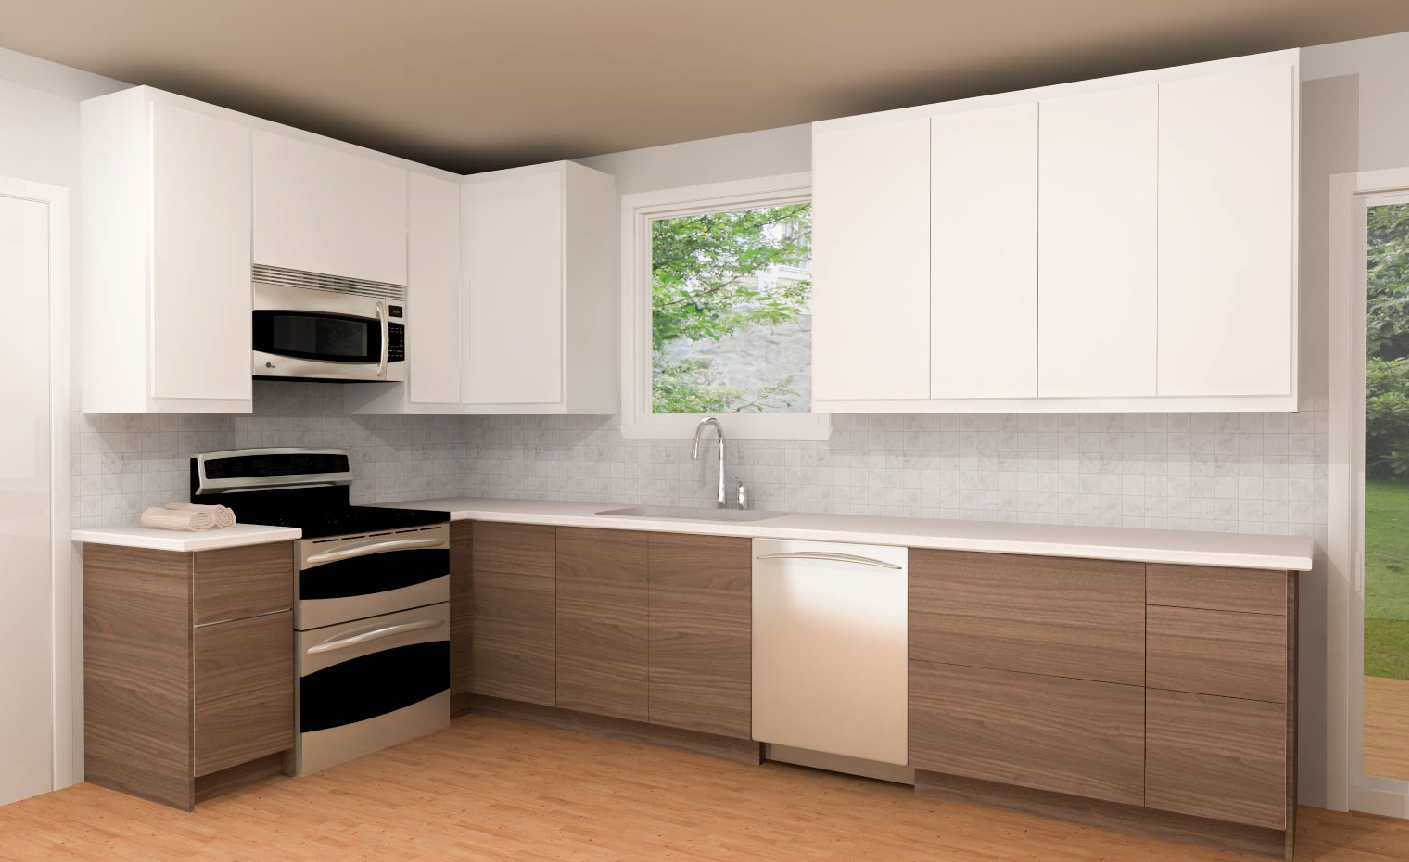 Ikea Kitchen Design Visit Three Ikea Kitchens Cabinet Designs Under 5 000 Ikea Kitchens Cabinet